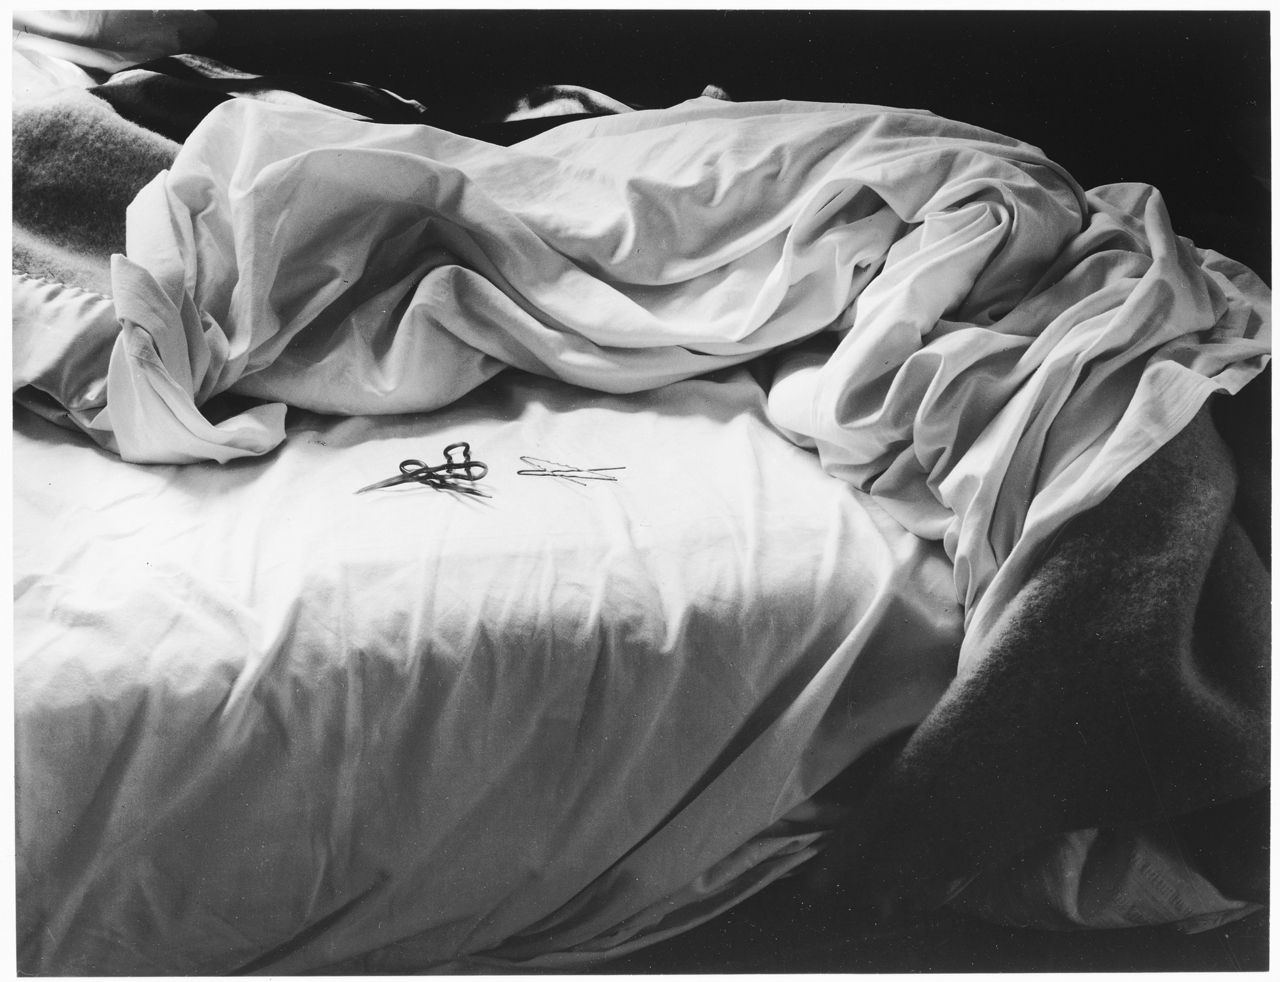 Black bed sheets tumblr - Unmade Bed By Imogen Cunningham 1957 Imogen Cunningham Pinterest What Is Beds And Robert Ri Chard